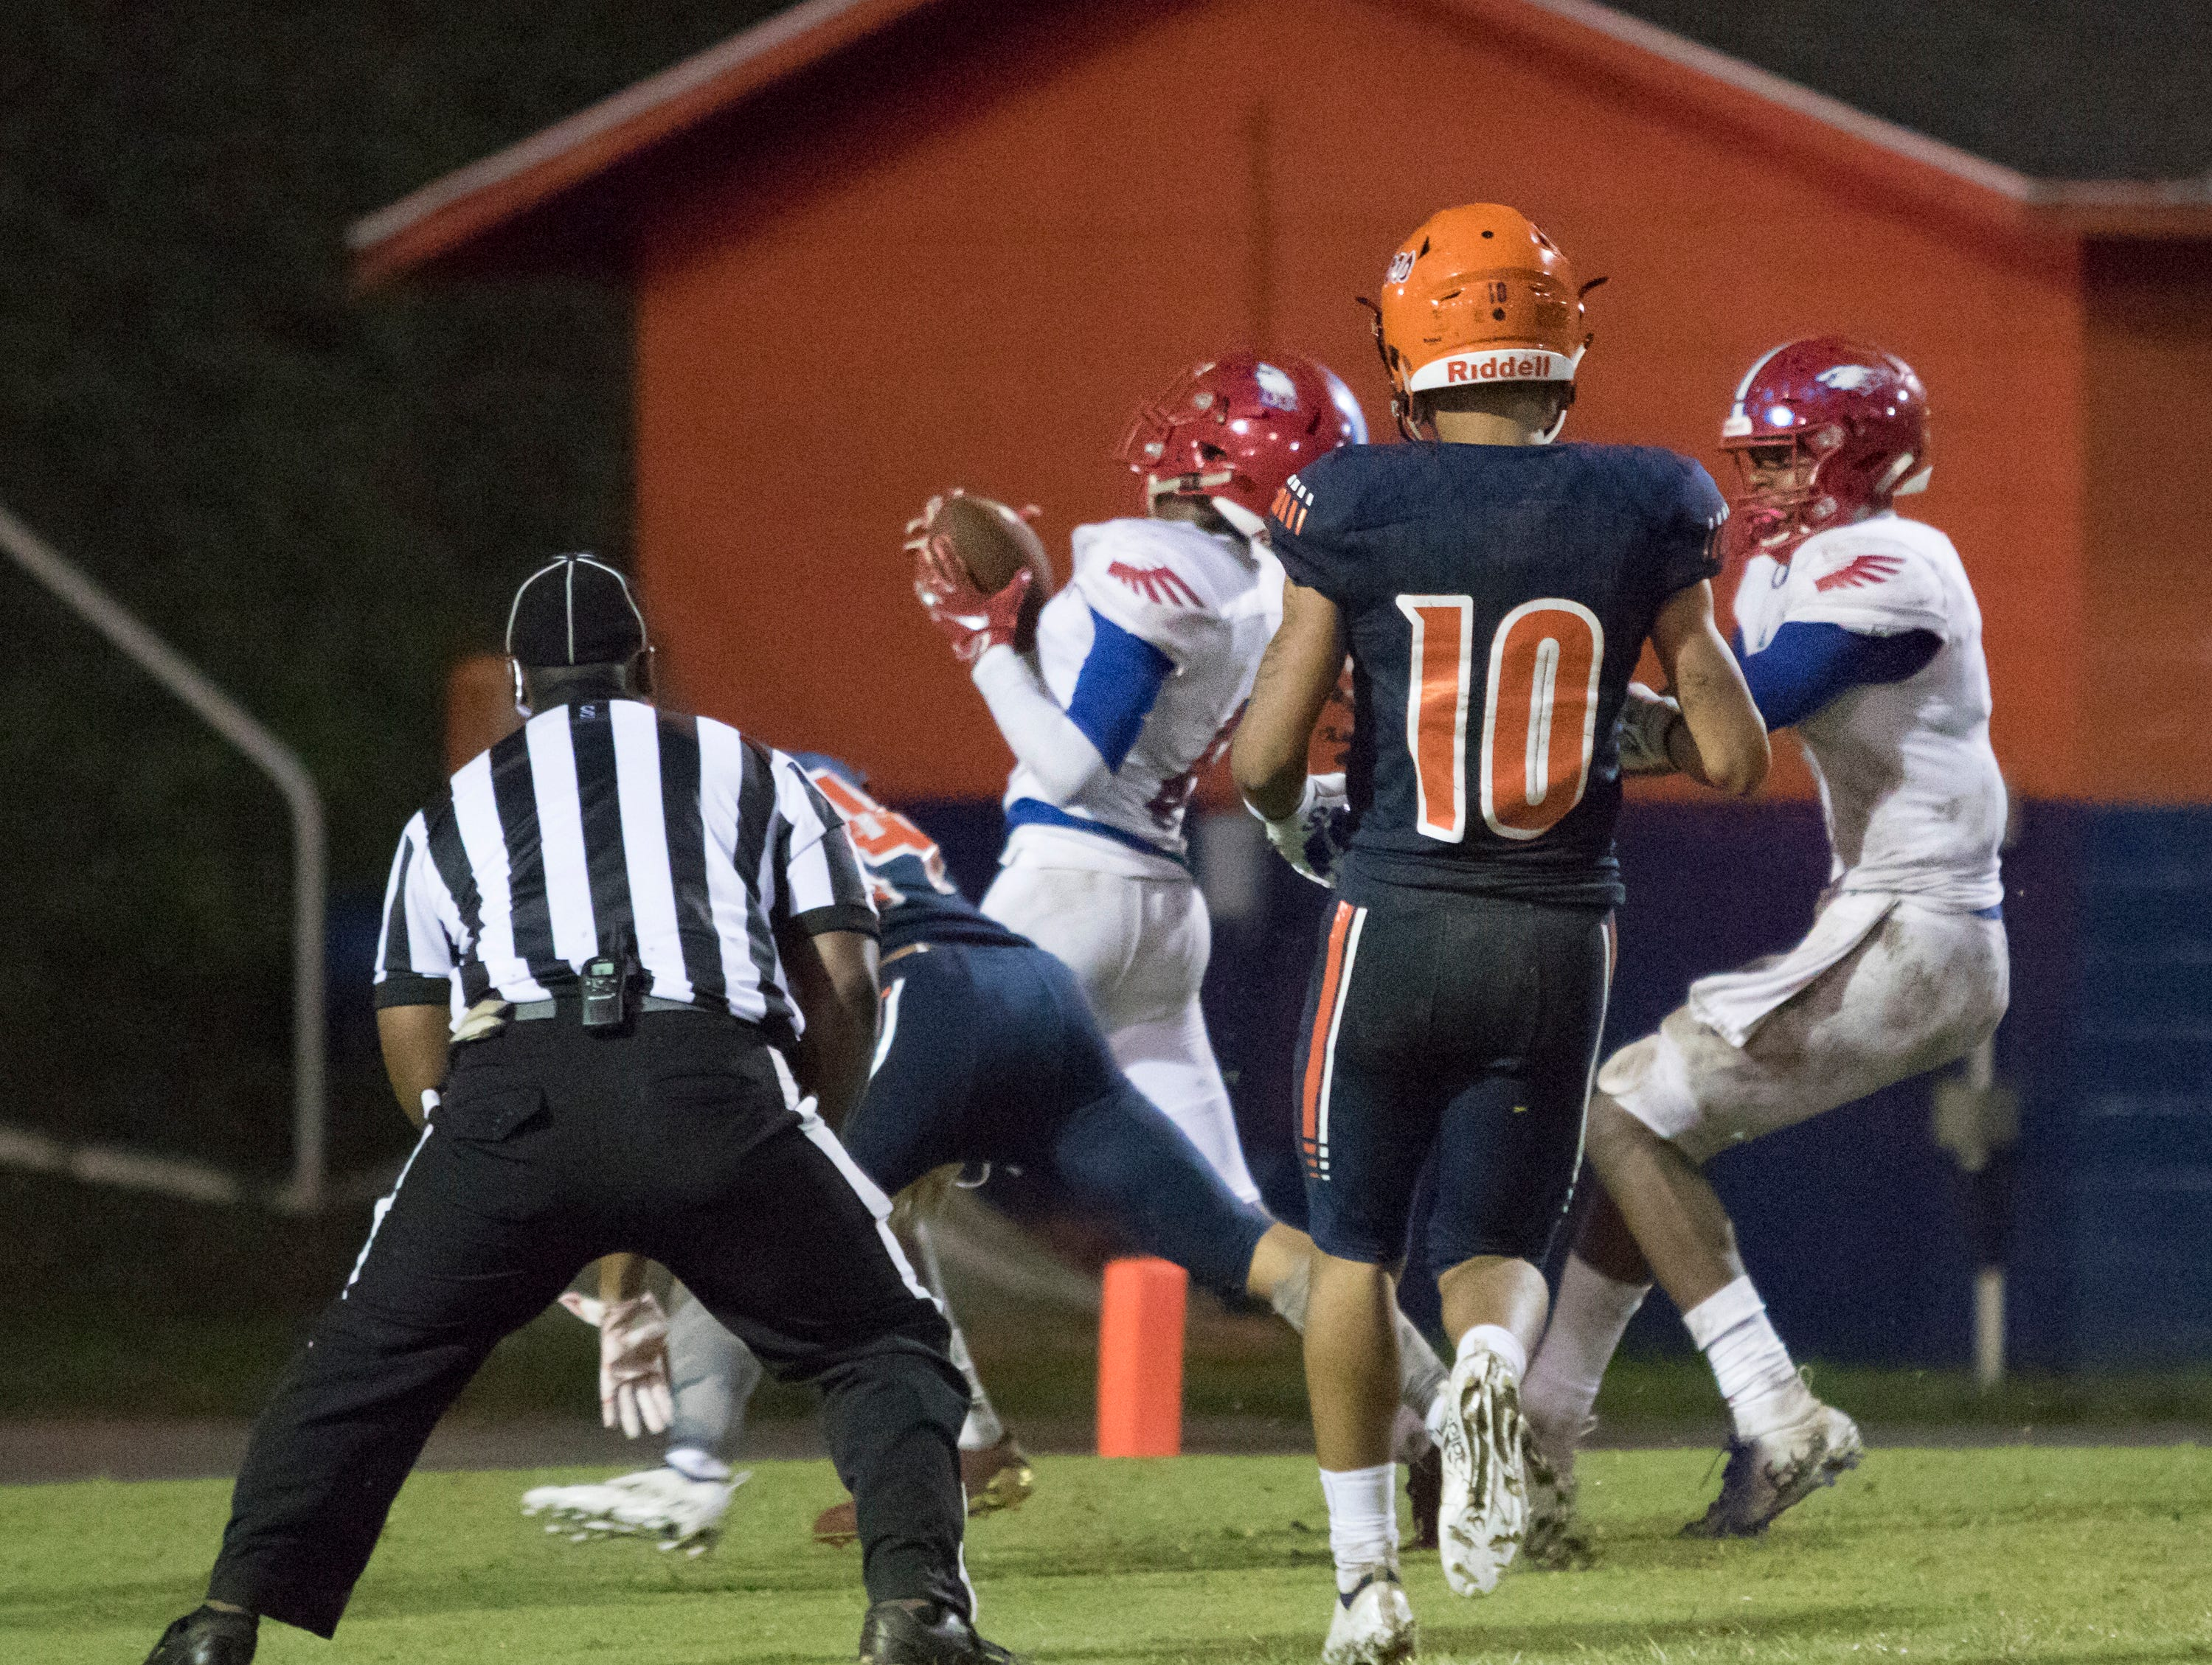 JoJo Blackmon (10) watches as Vonquarius Brown (6) intercepts a Gators pass in the endzone during the Pine Forest vs Escambia football game at Escambia High School in Pensacola on Friday, September 28, 2018.